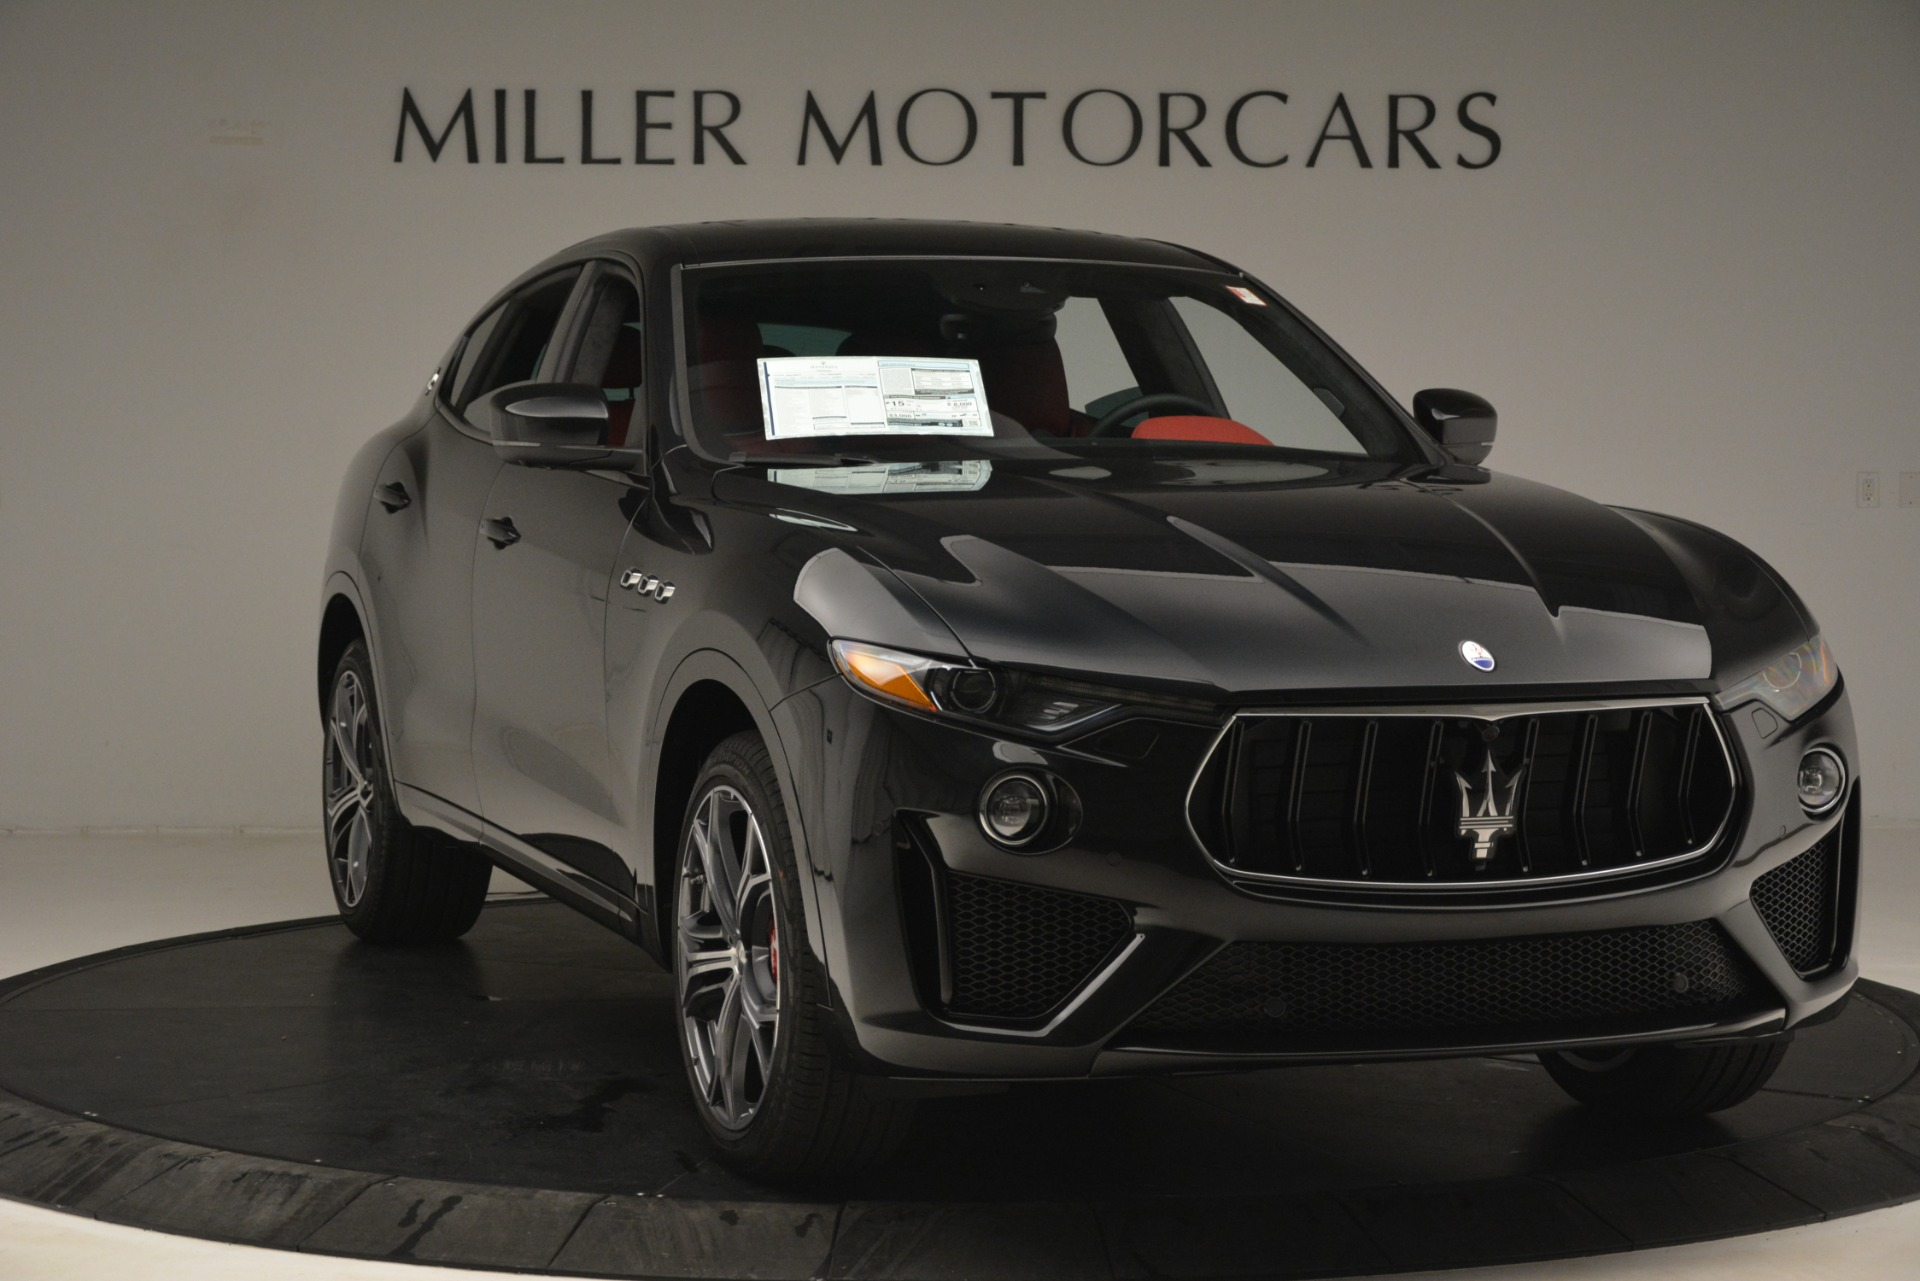 New 2019 Maserati Levante GTS For Sale In Westport, CT 3023_p11